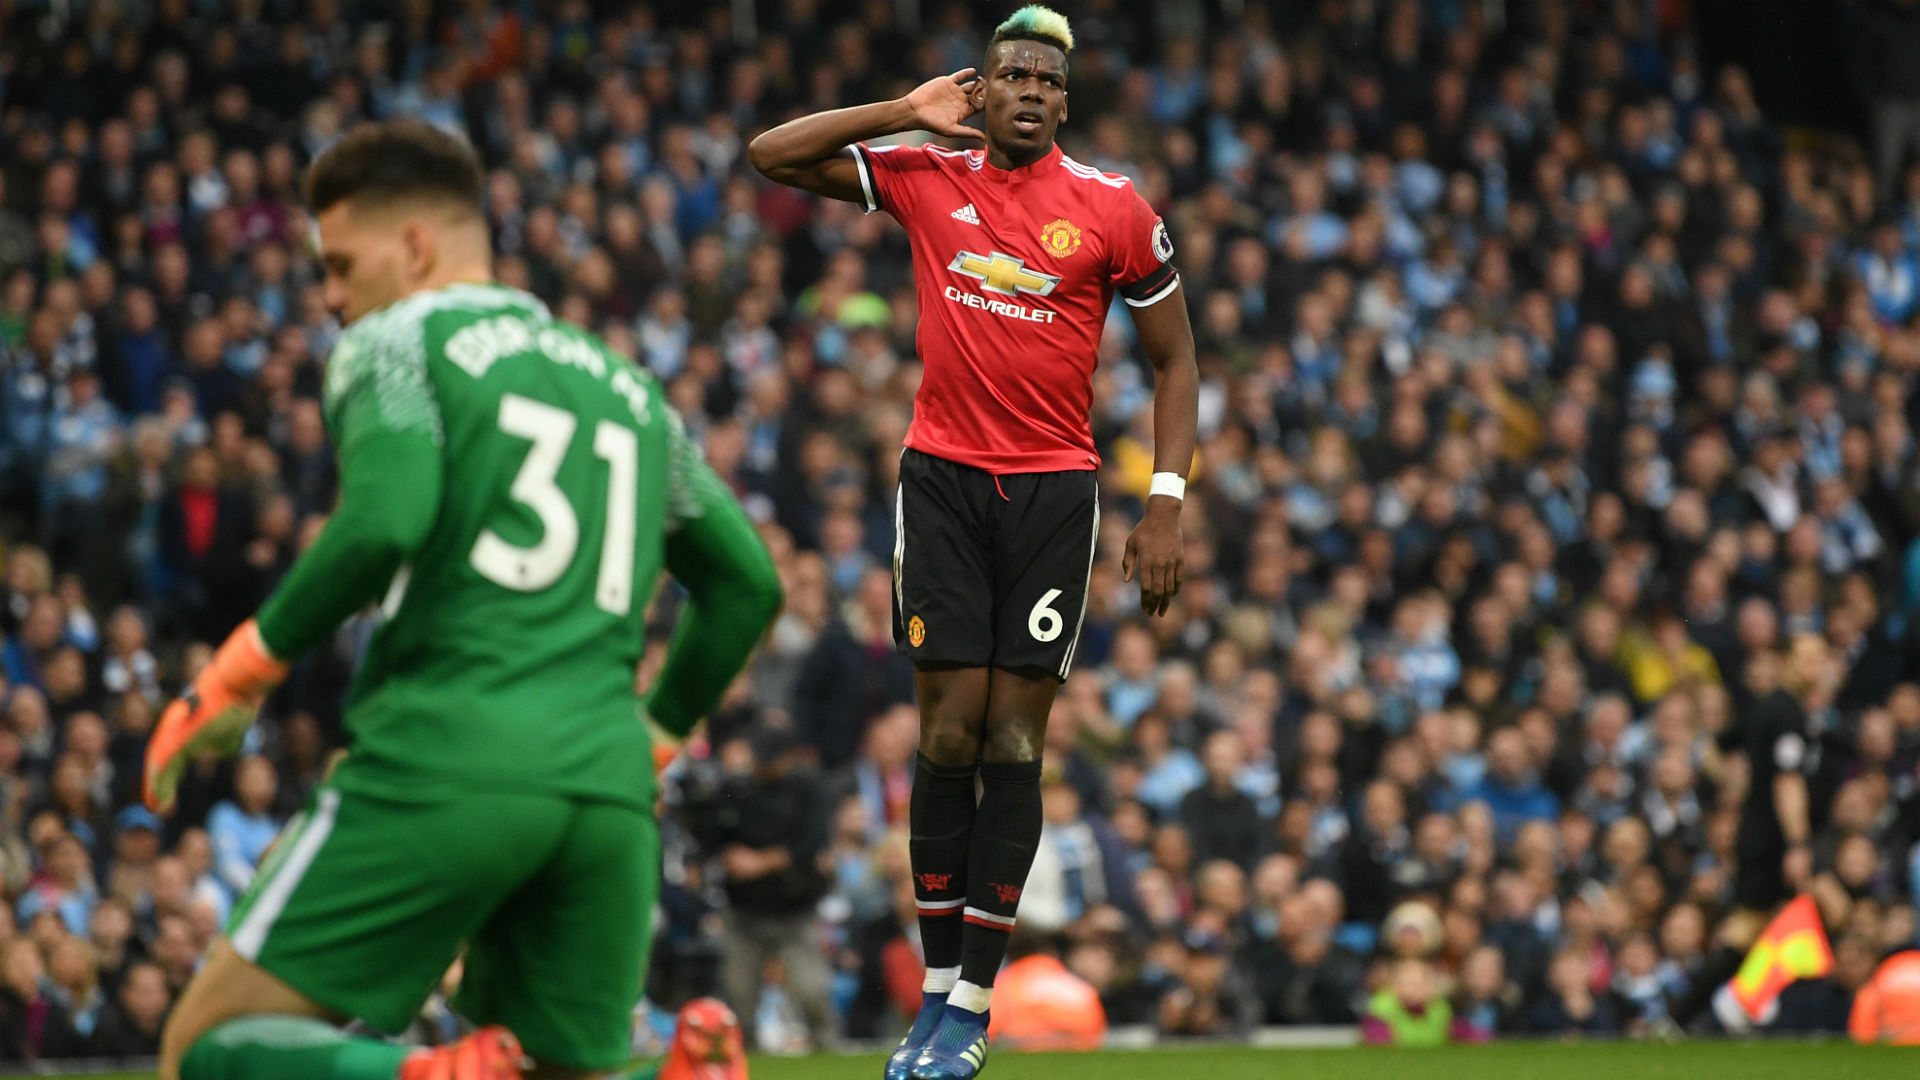 Manchester City 2 Manchester United 3 Pogba At The Double